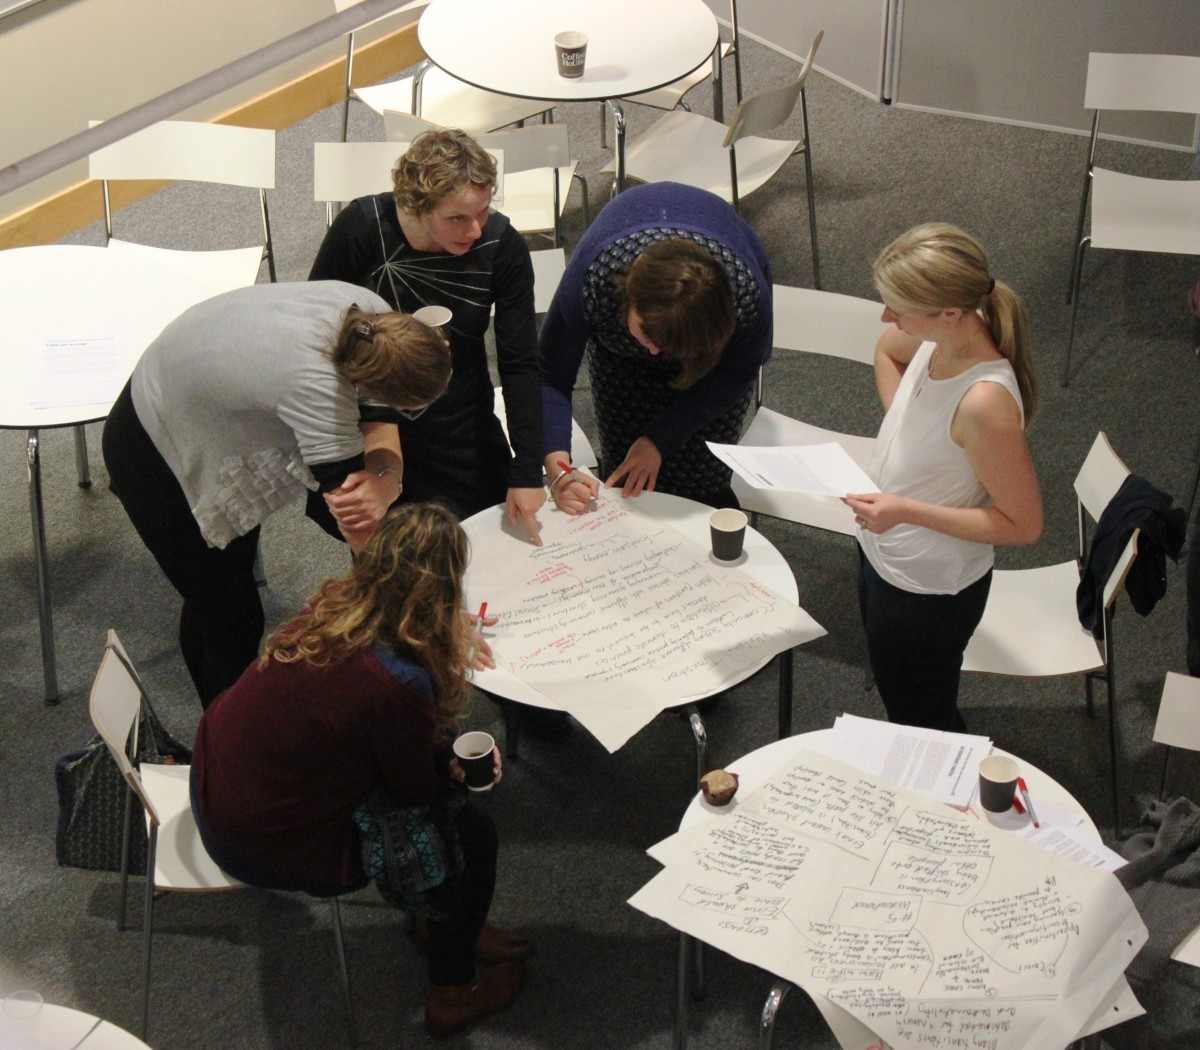 photos of participants 'nexusing' at the Sheffield workshop